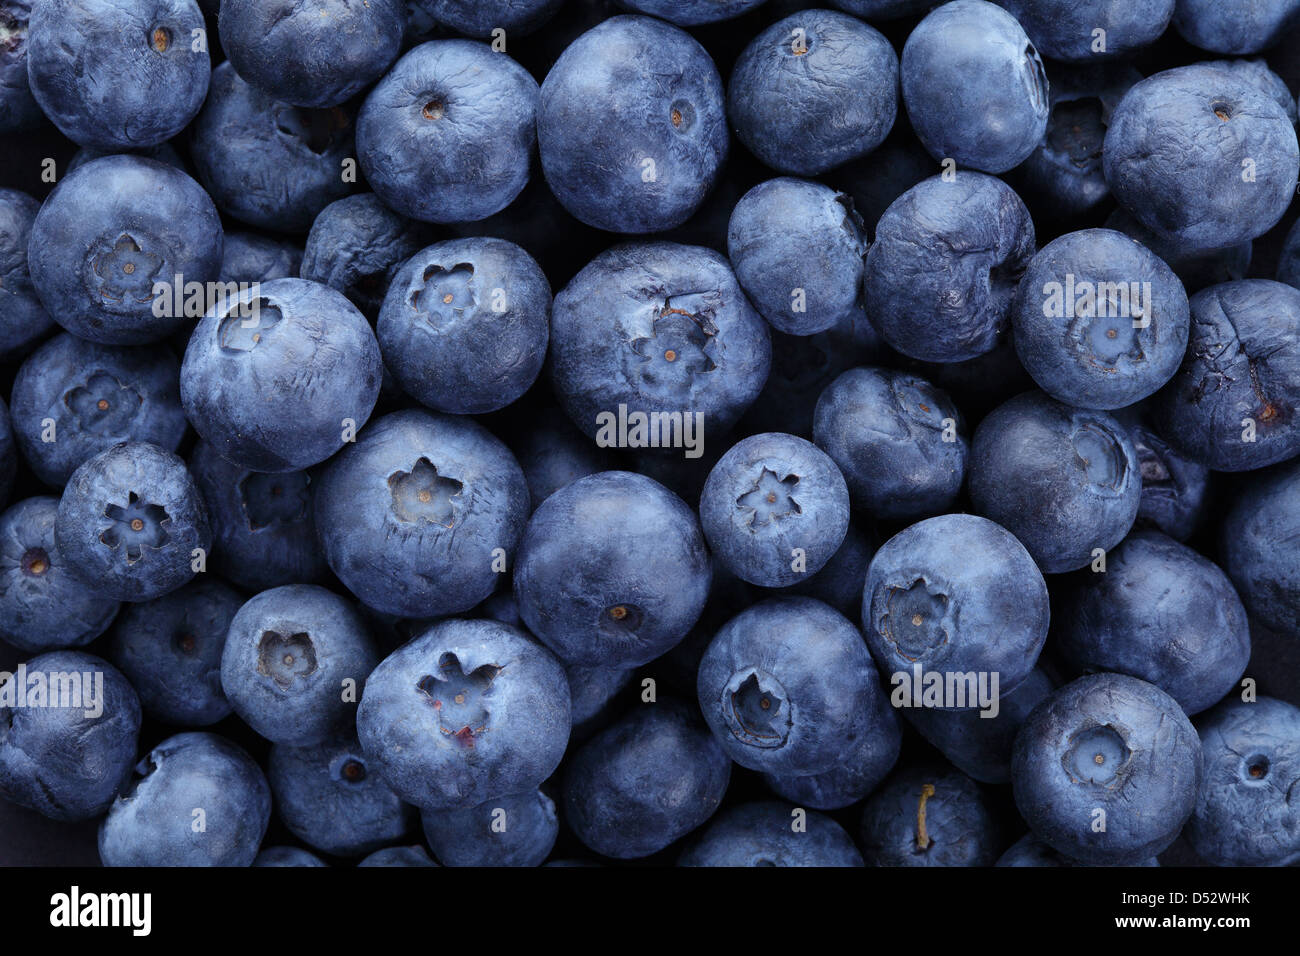 Organic blueberries in high resolution as a background - Stock Image